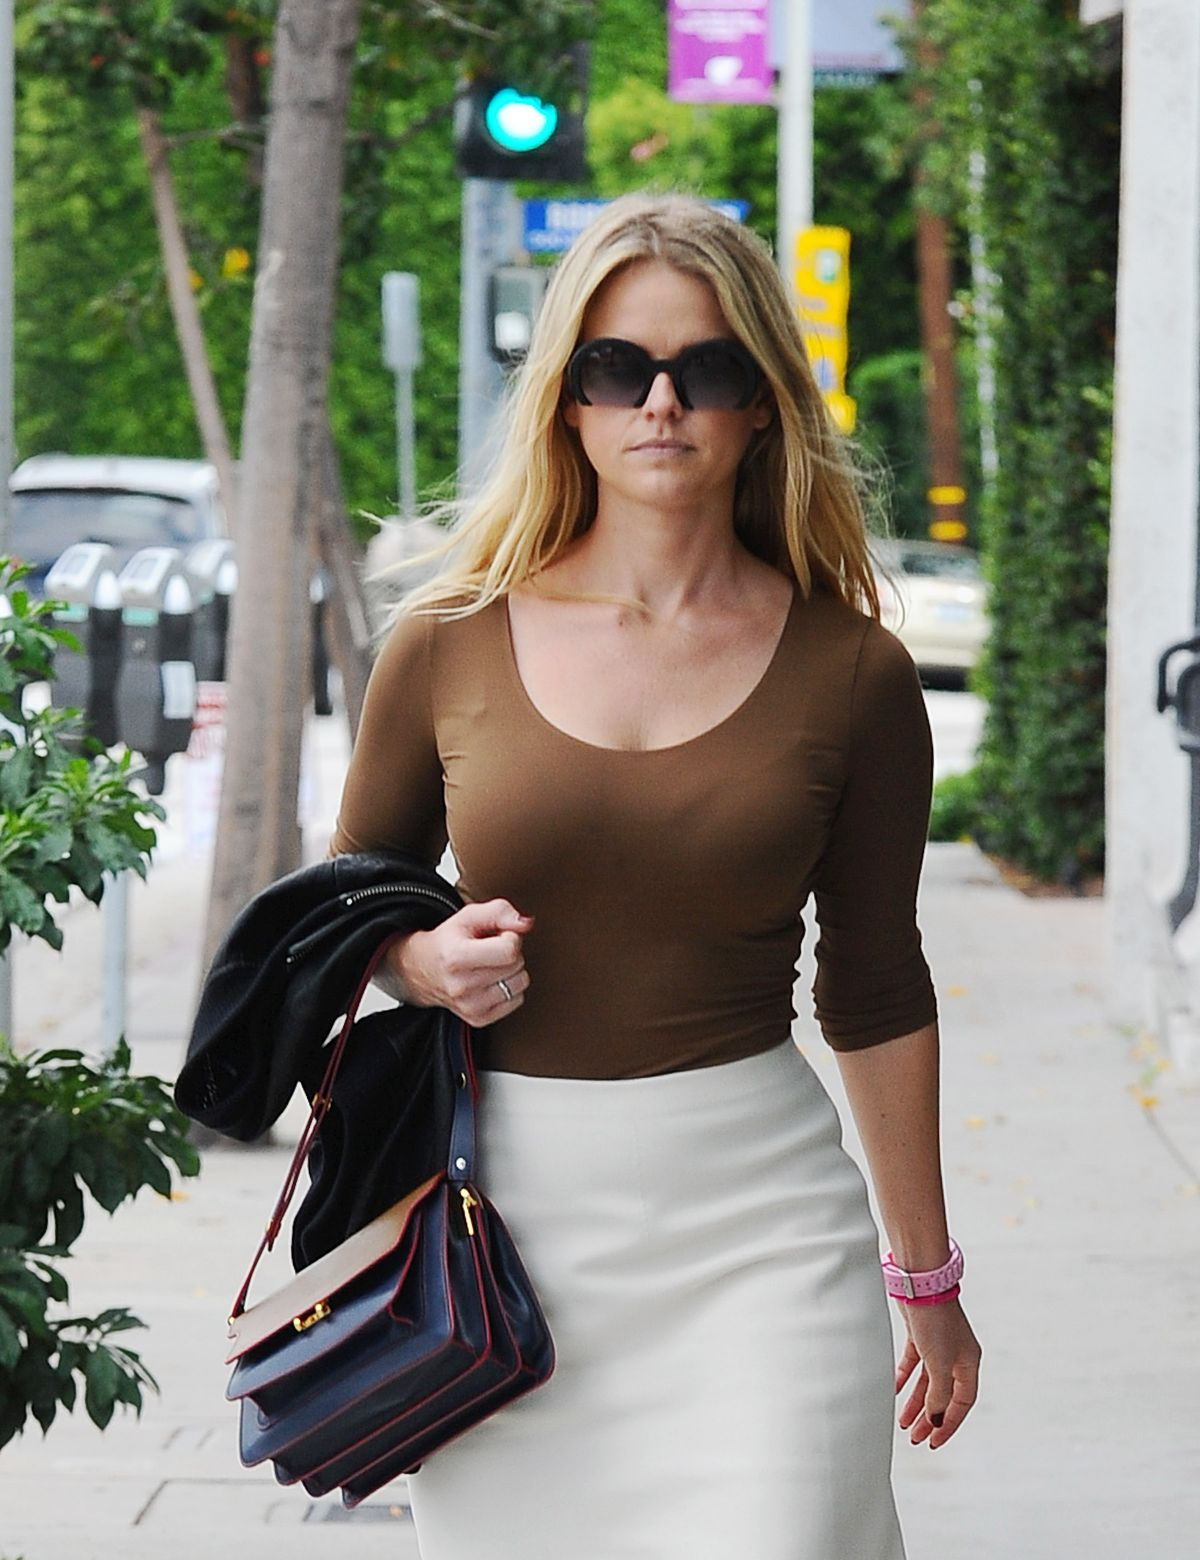 Paparazzi Alice Eve naked (75 photo), Topless, Hot, Boobs, braless 2019